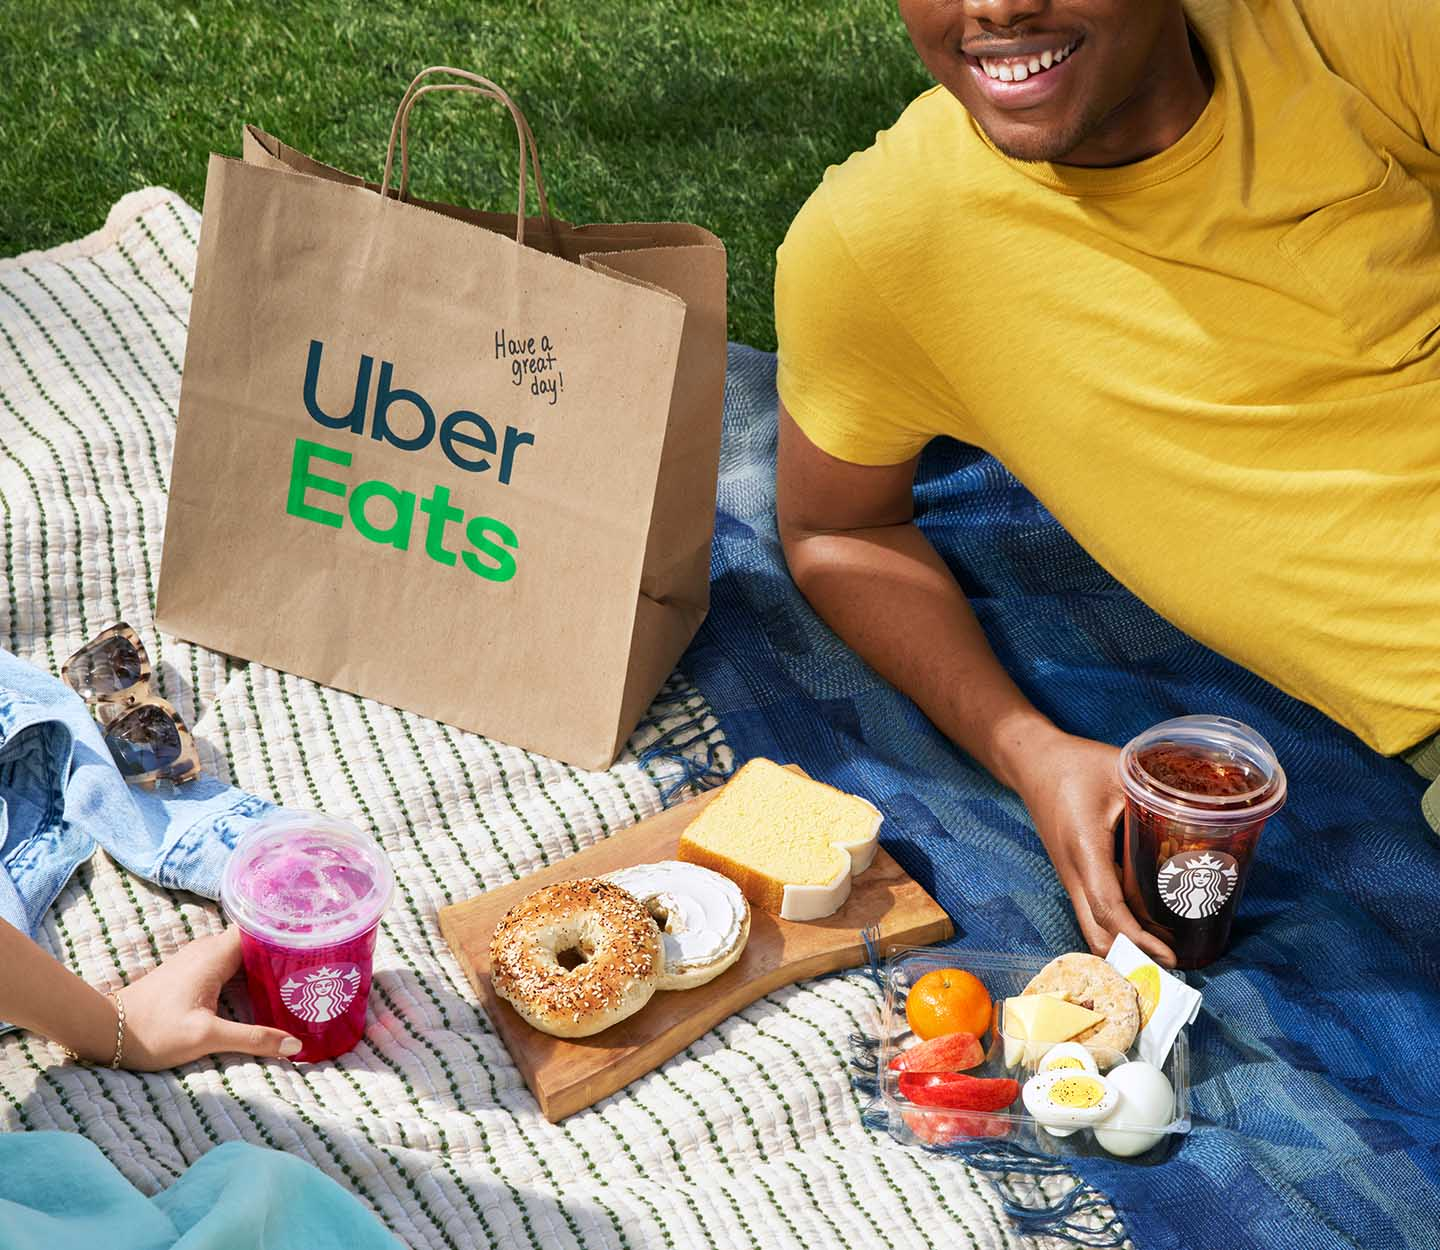 Two friends sit with an Uber Eats delivery bag and assortment of Starbucks coffee and bakery items in an outdoor picnic setting.